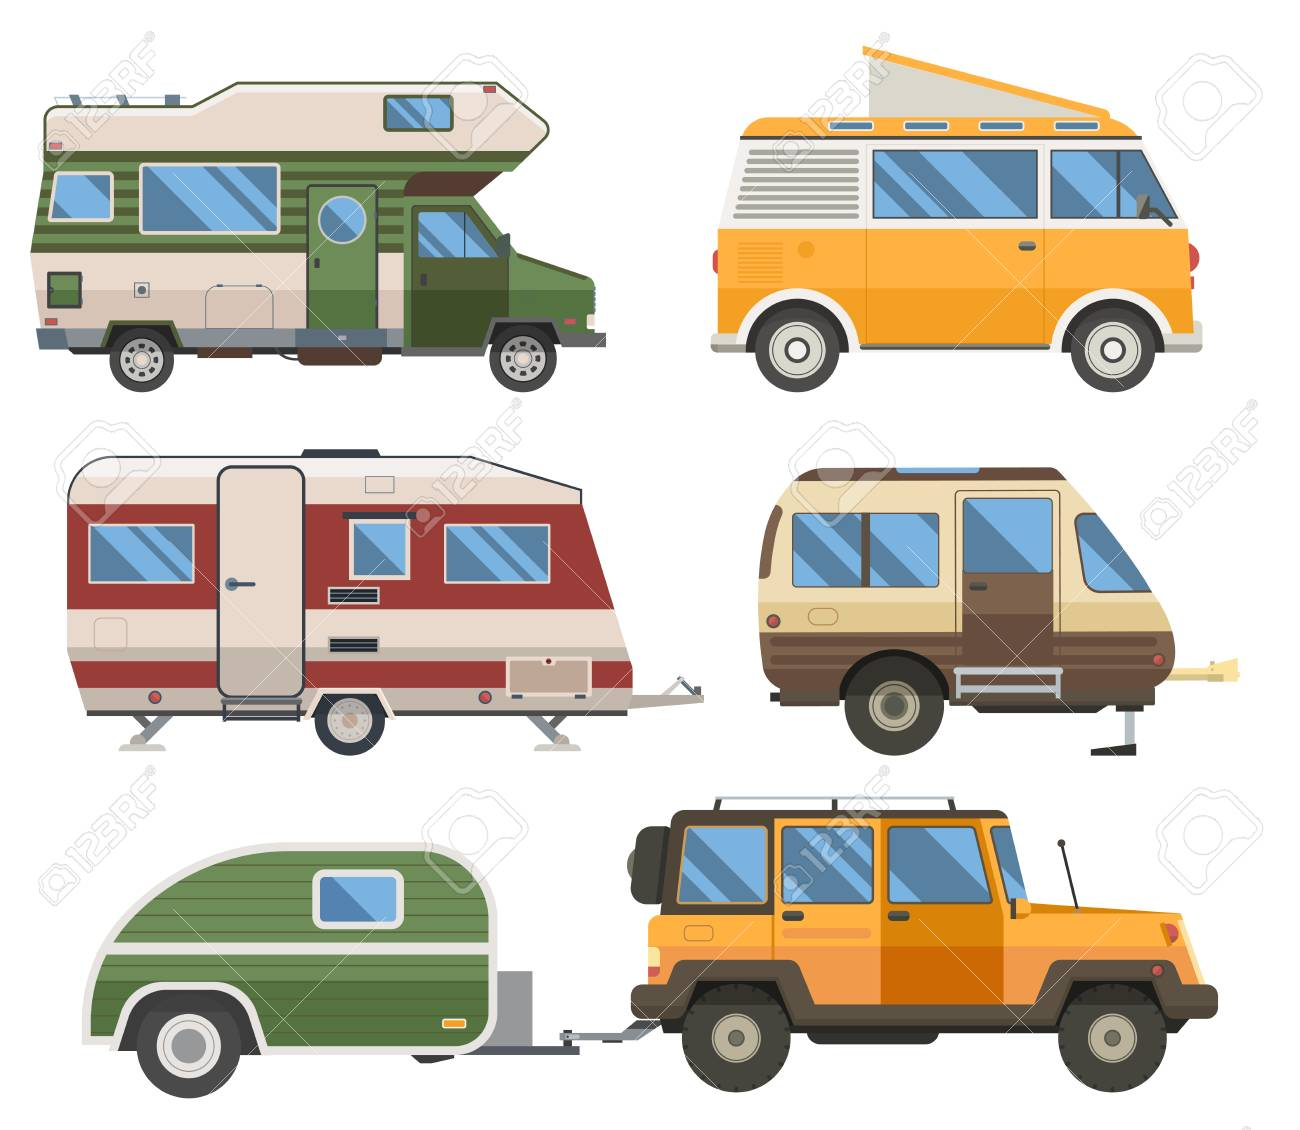 Travel cars collection. Rv campers, camping trailers and caravans set. Road traveler trucks and motorhomes in flat design. - 121826512